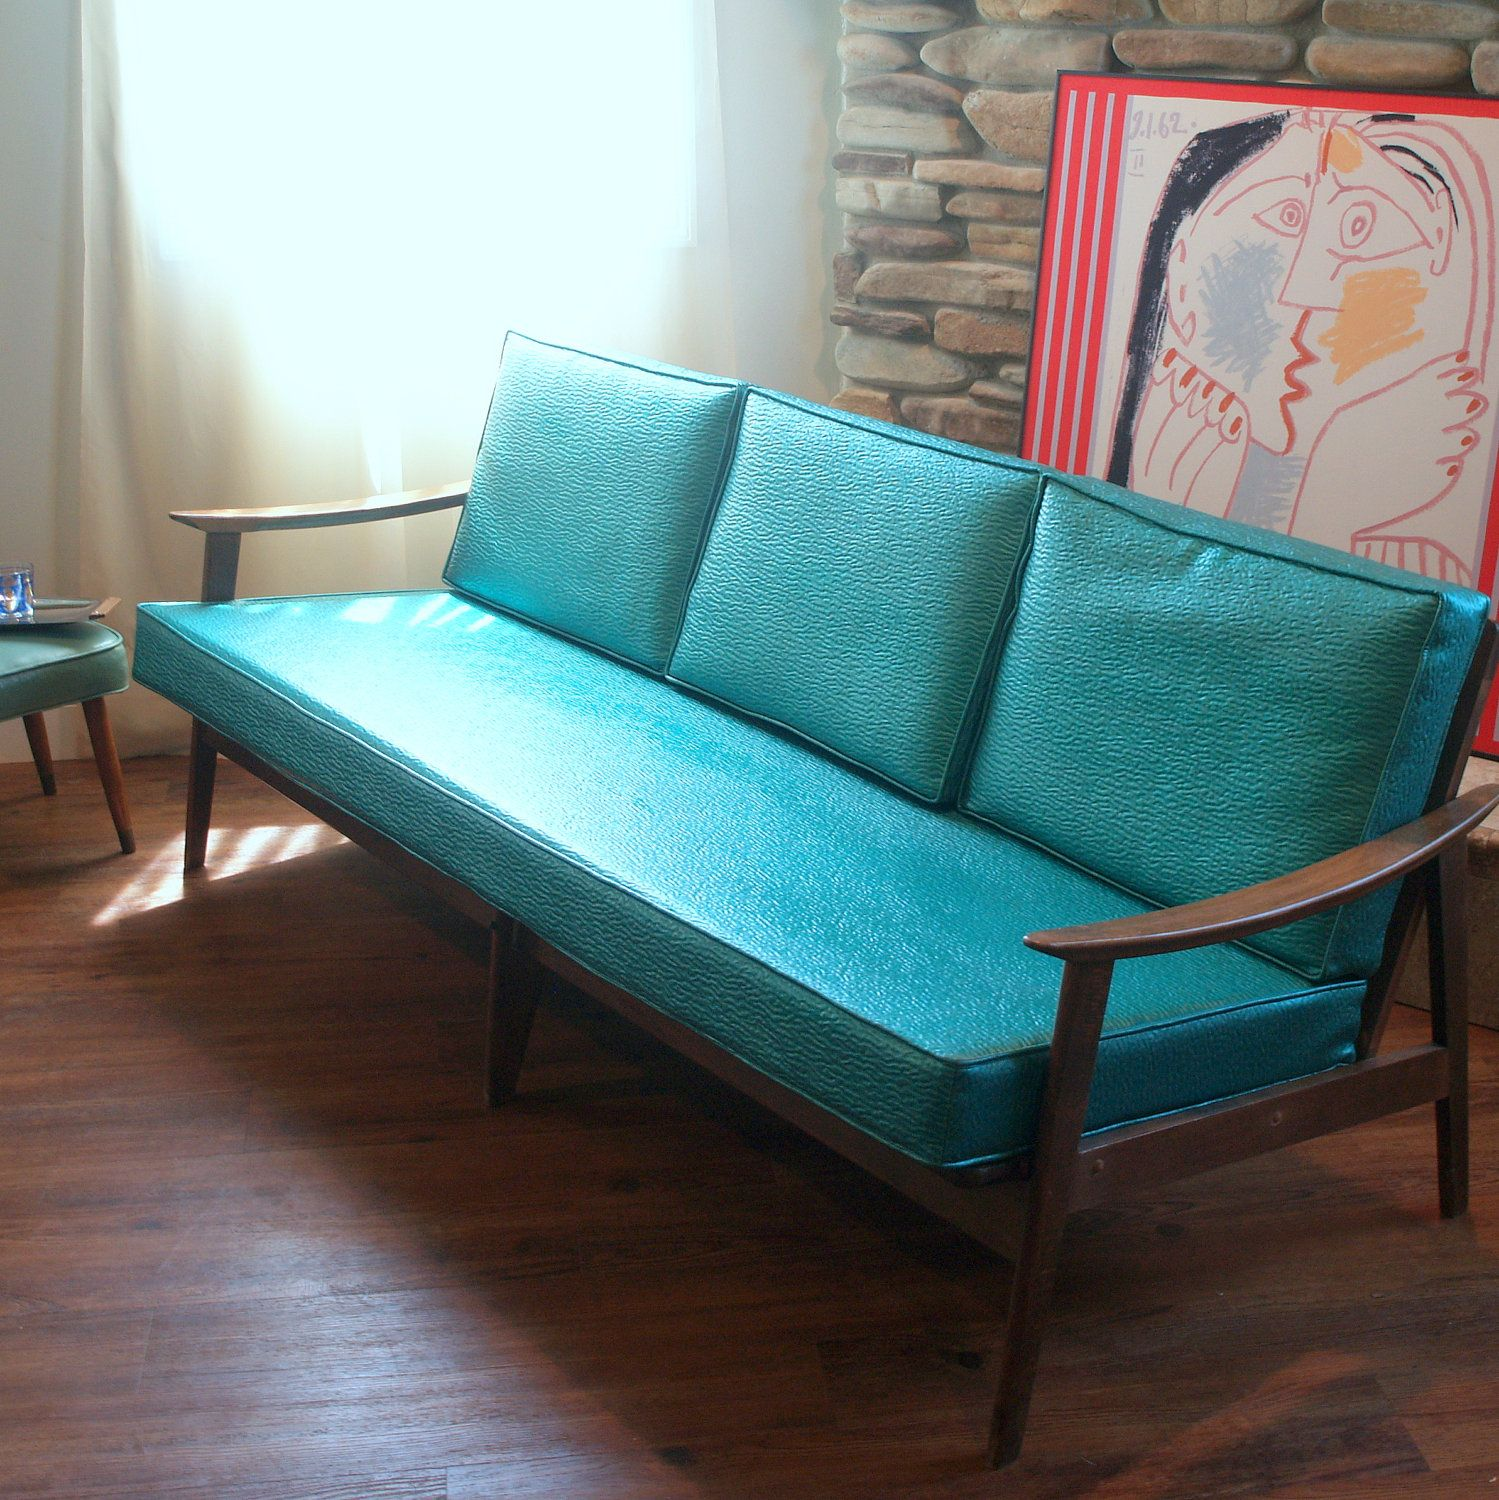 Vintage Danish Modern Sofa 1950 S Mid Century Modern Teal And